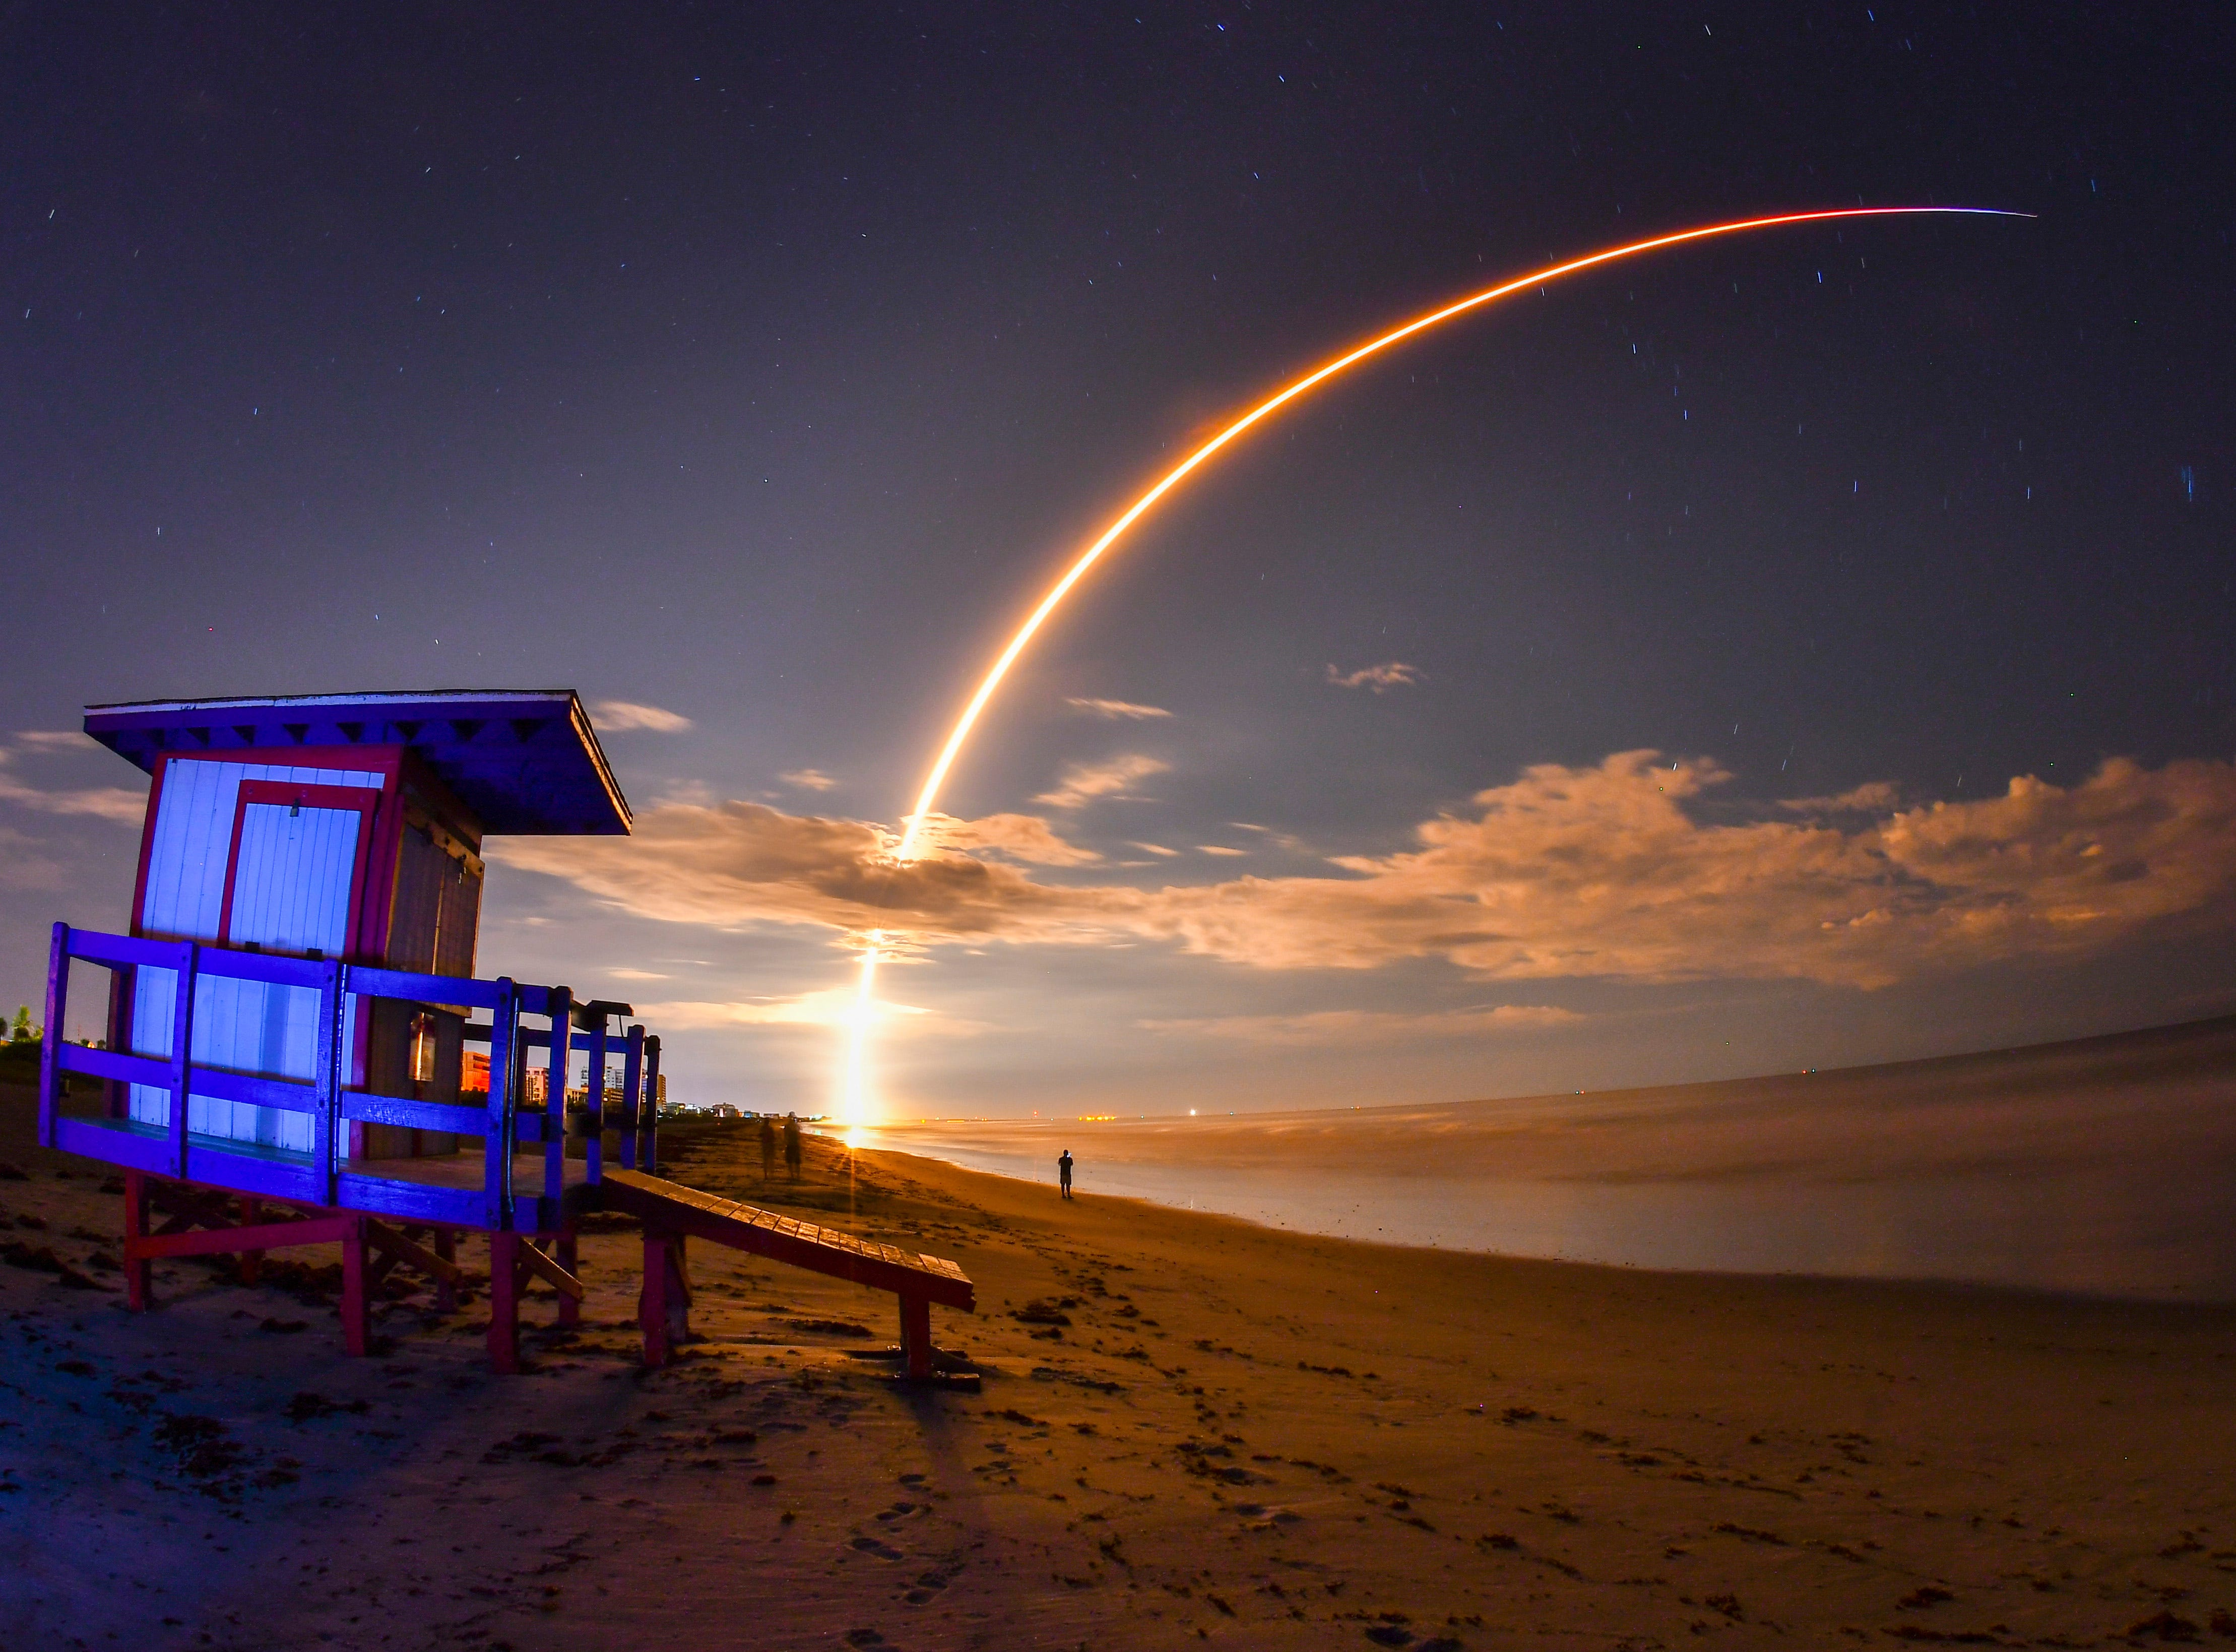 Sept. 9, 2018: The early morning launch of Telesat's Telstar 18 Vantage communications satellite on a SpaceX Falcon 9 rocket, launched form Launch Complex 40 at Cape Canaveral Air Force Station, viewed from Minutemen Causeway in Cocoa Beach. The photo is a 145 second time exposure of the launch with a lifeguard station in the foreground.